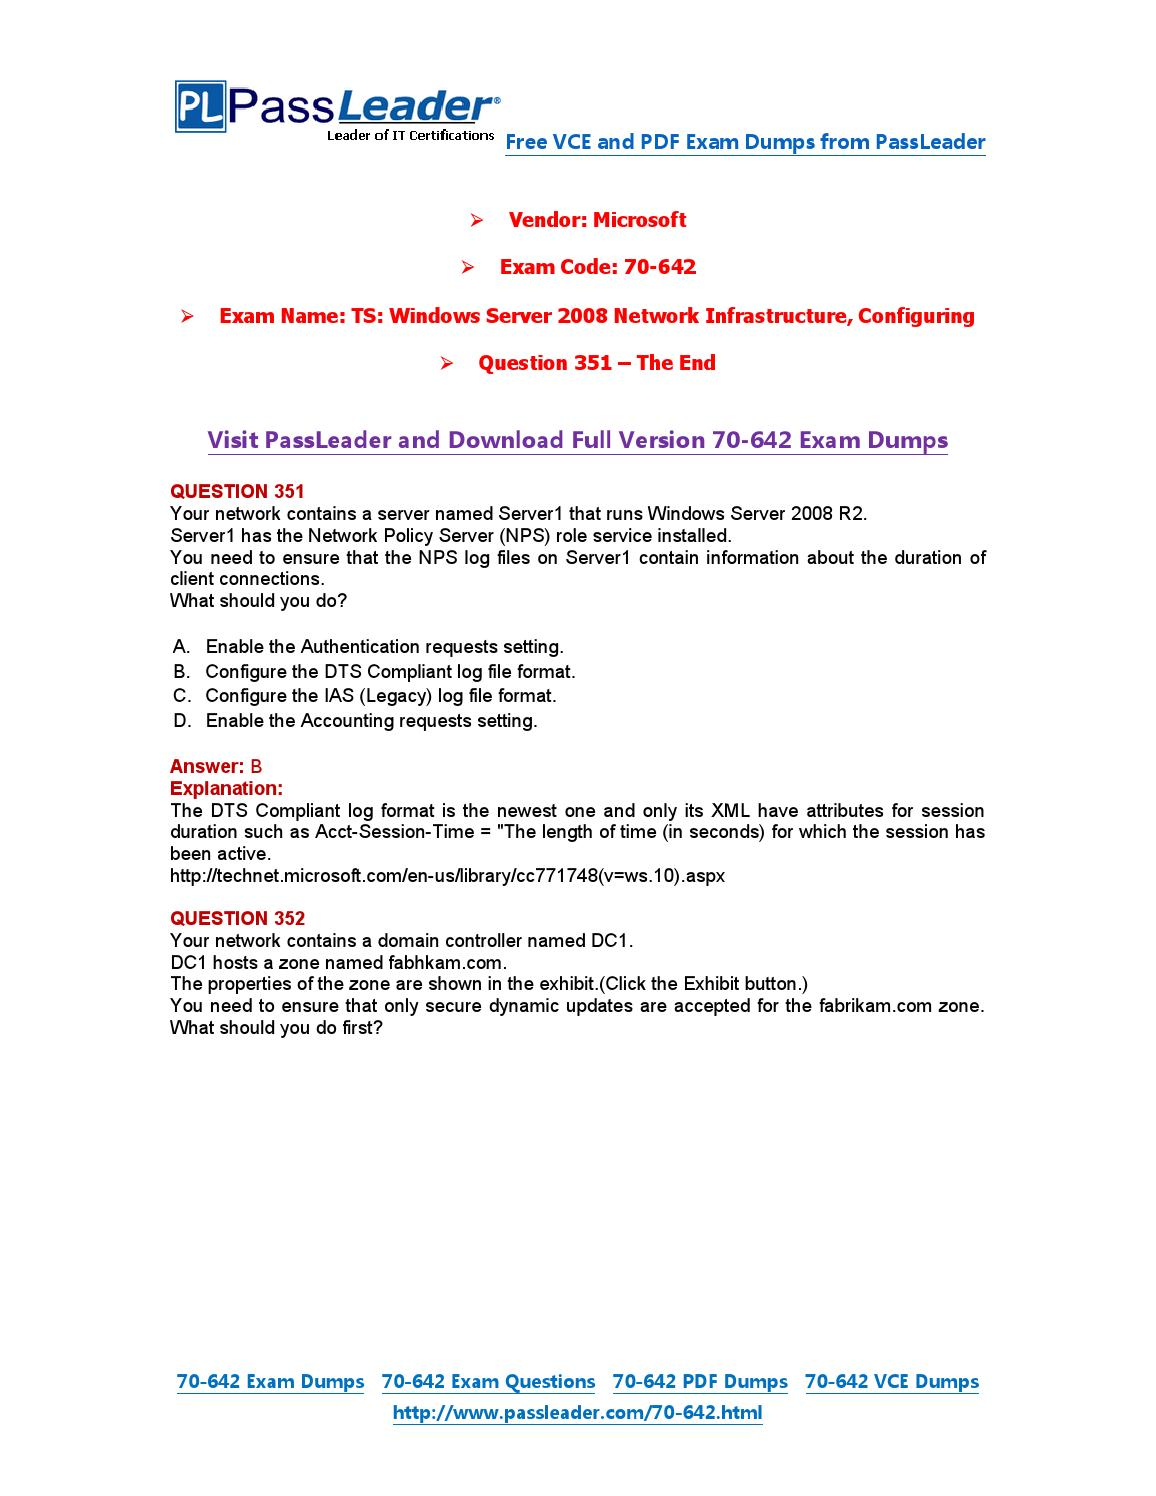 TS Windows Server 2008 Network Infrastructure (Real Exam Questions)